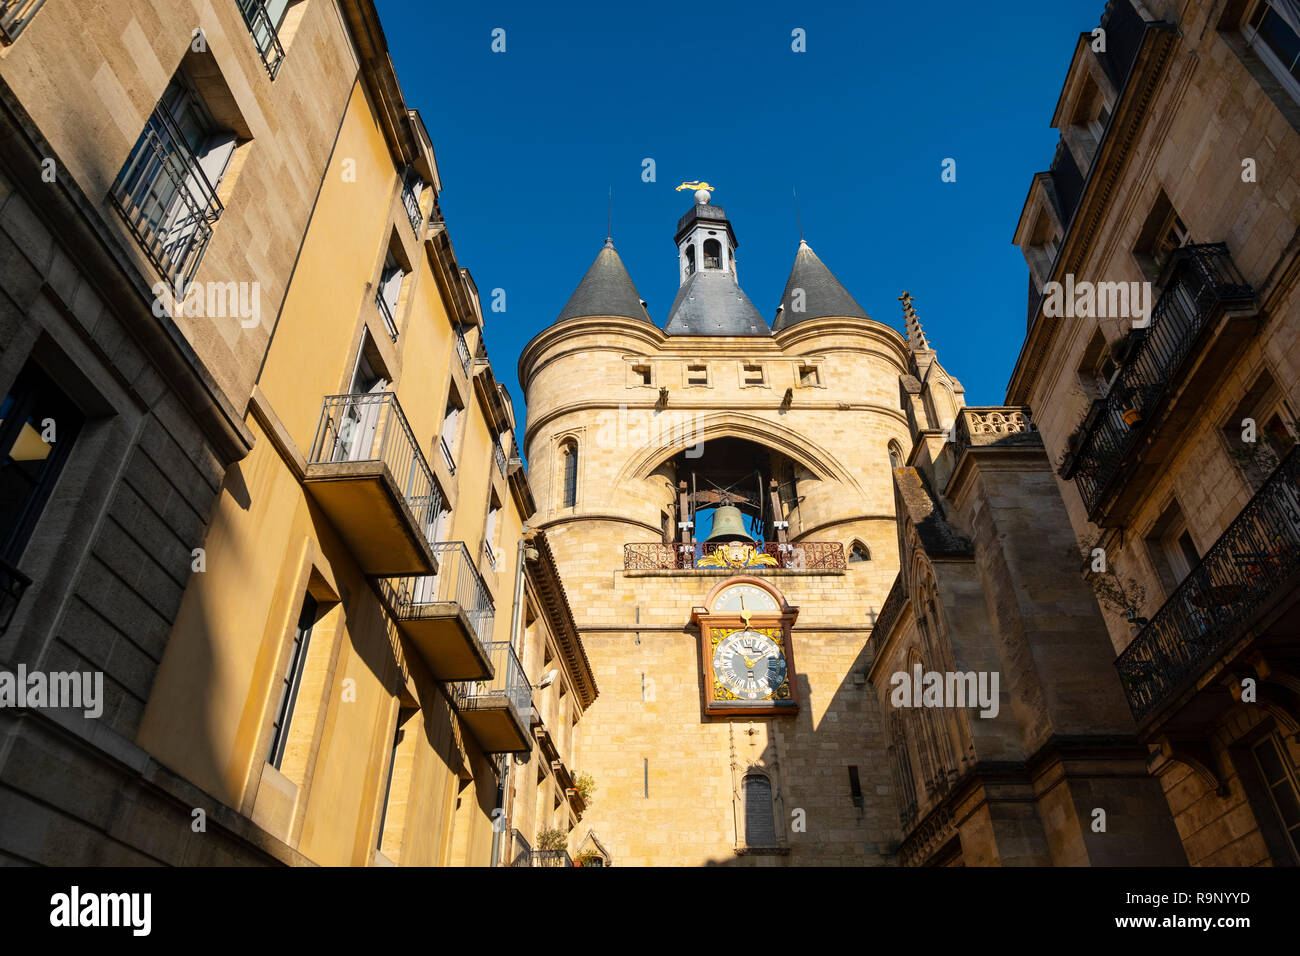 Clock tower, the Grosse cloche, Bordeaux, Gironde. Aquitaine region. France Europe. Stock Photo